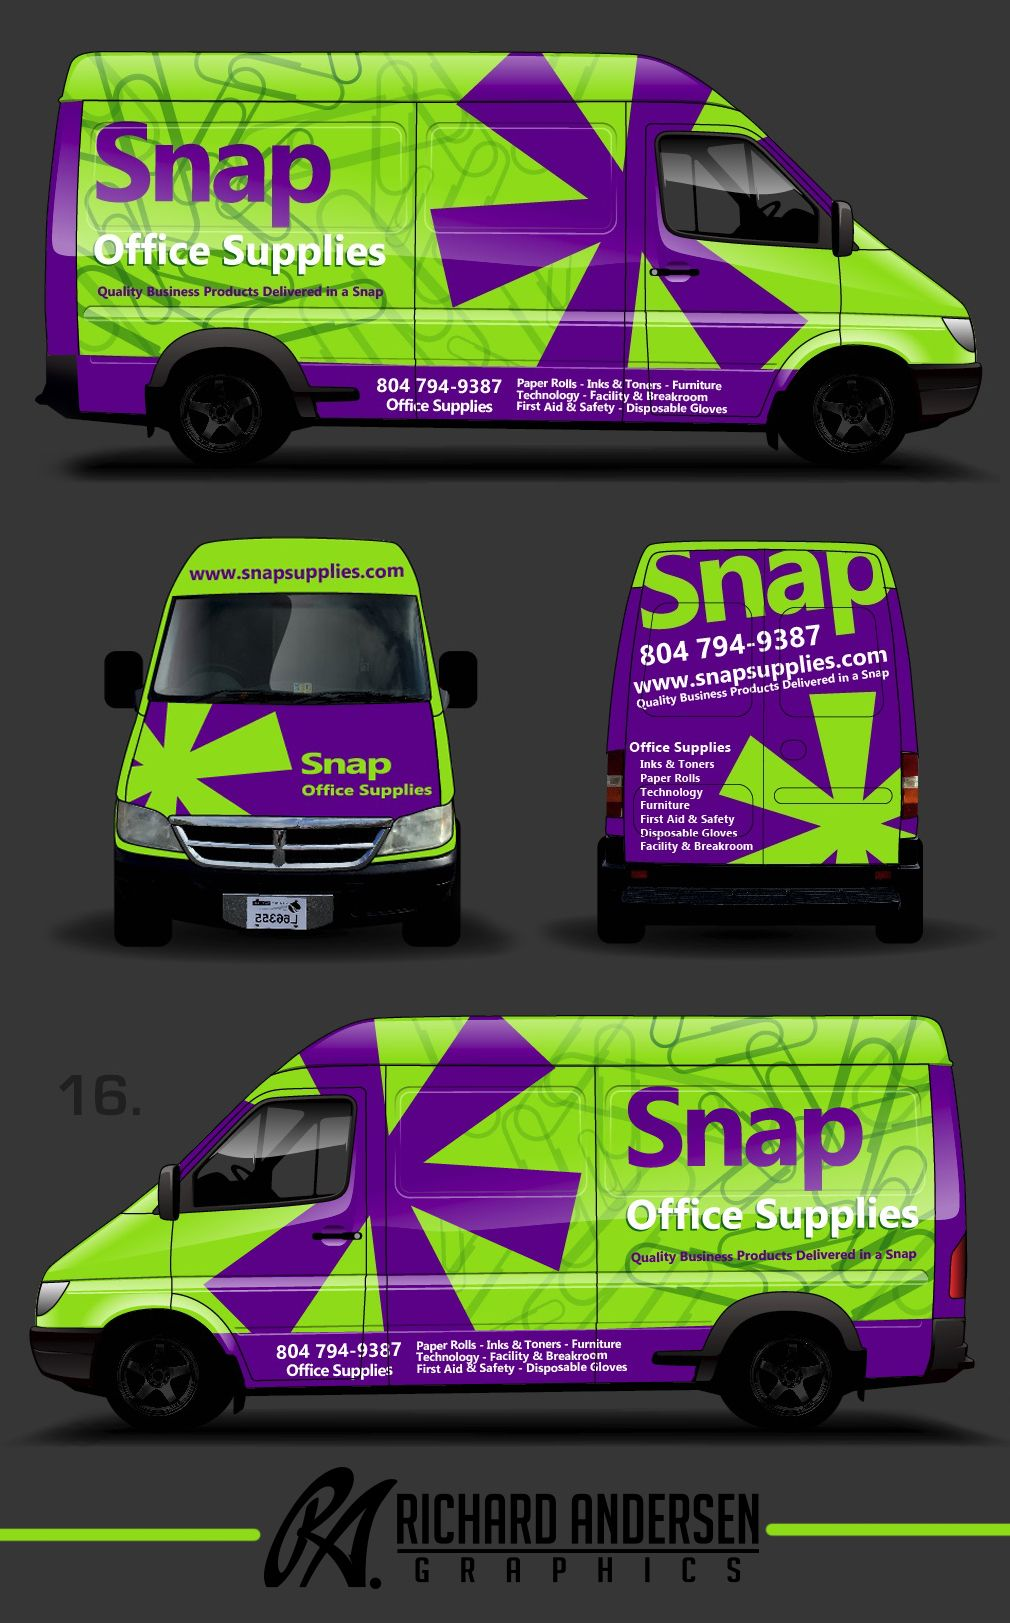 Wrap Design By Richard Andersen Https Ragraphics Carbonmade Com